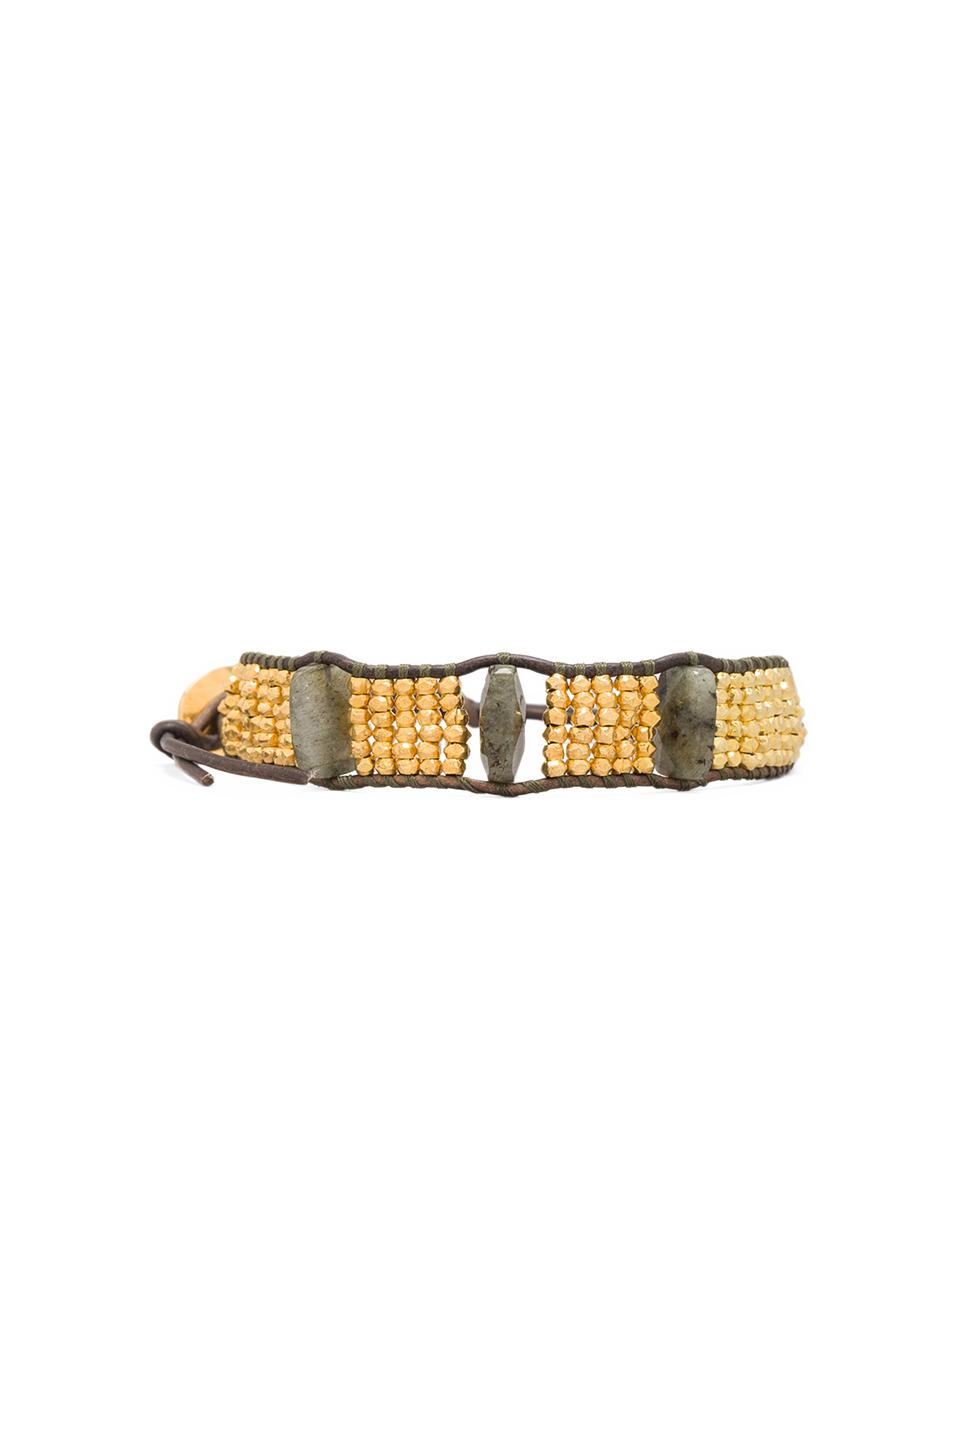 CHAN LUU Beaded Bracelet in Labradorite/Natural Grey